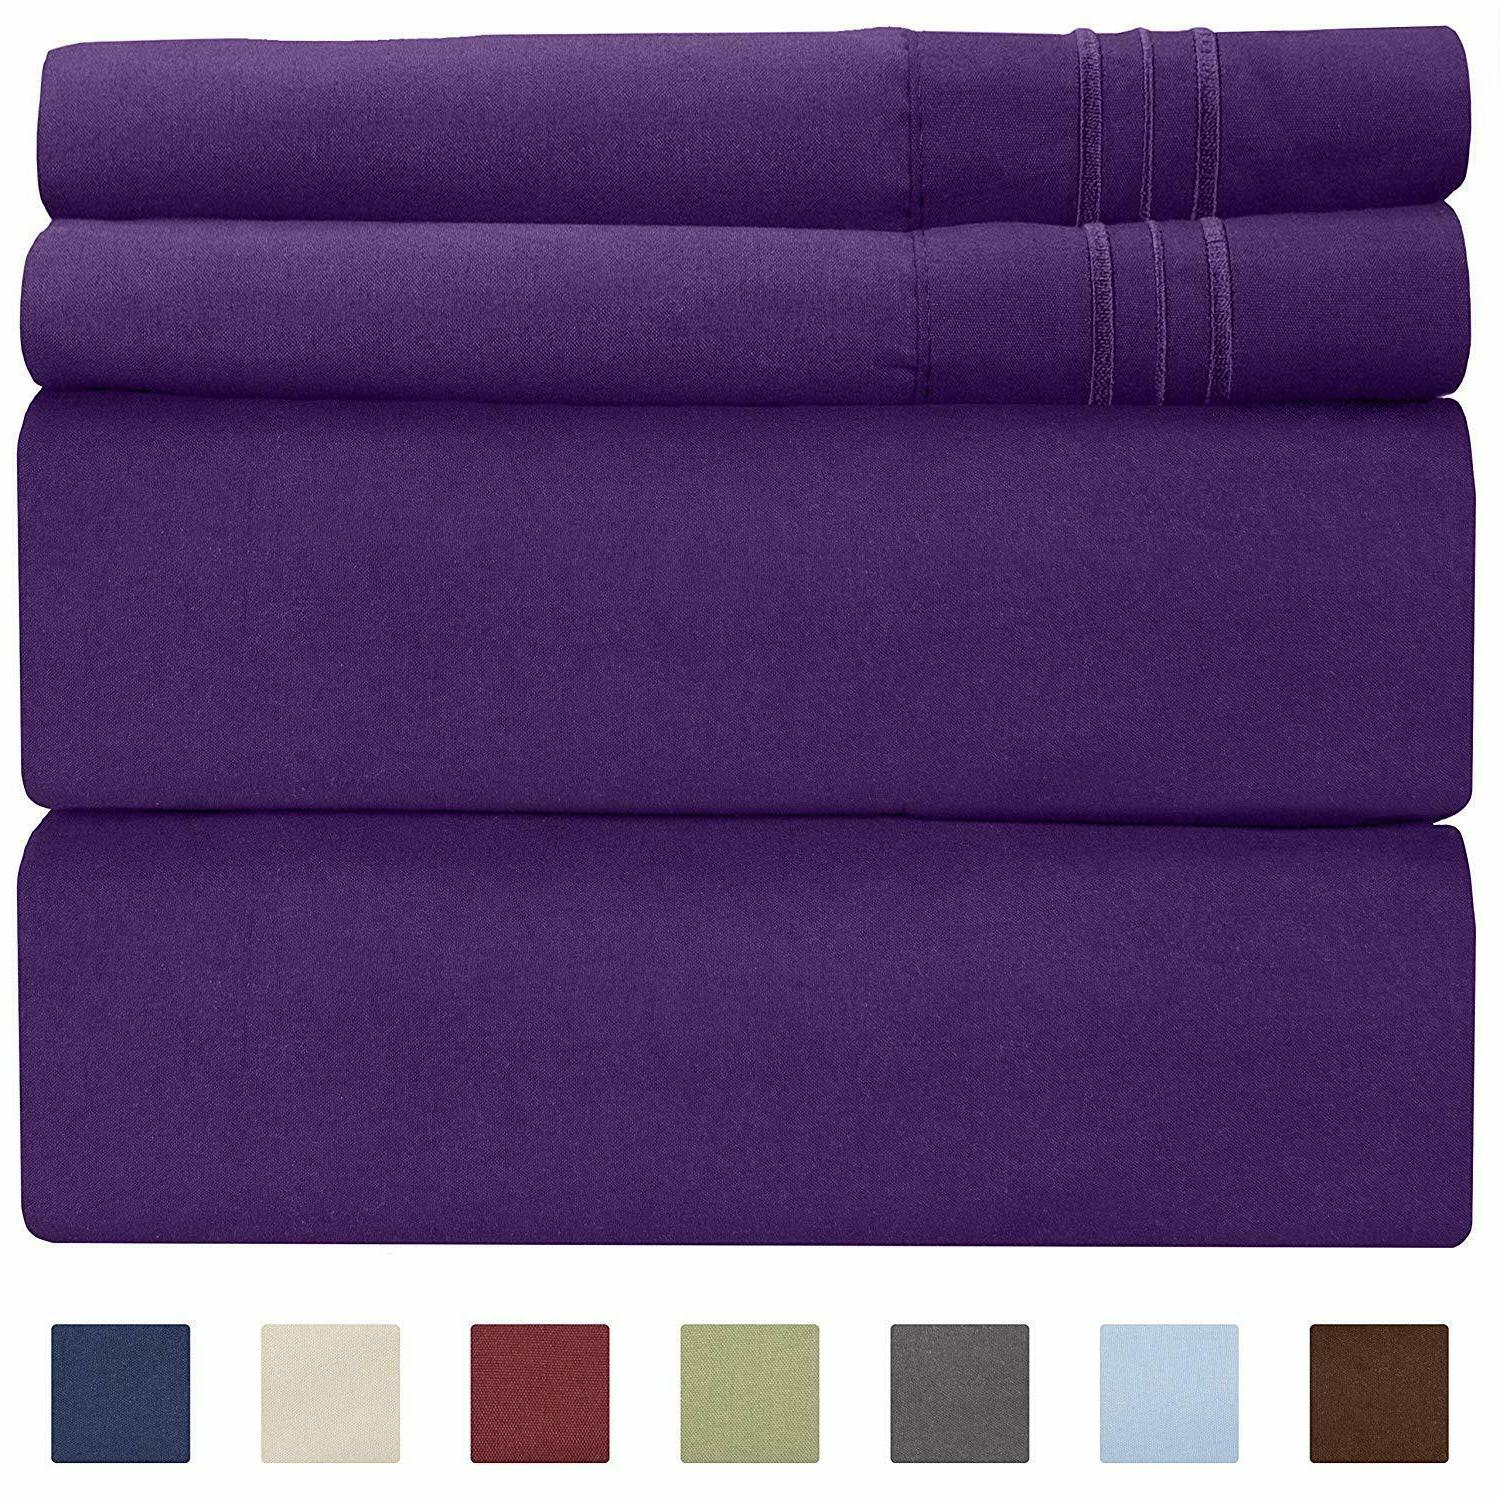 Queen Wrinkle Free Bed Sheets Home 4